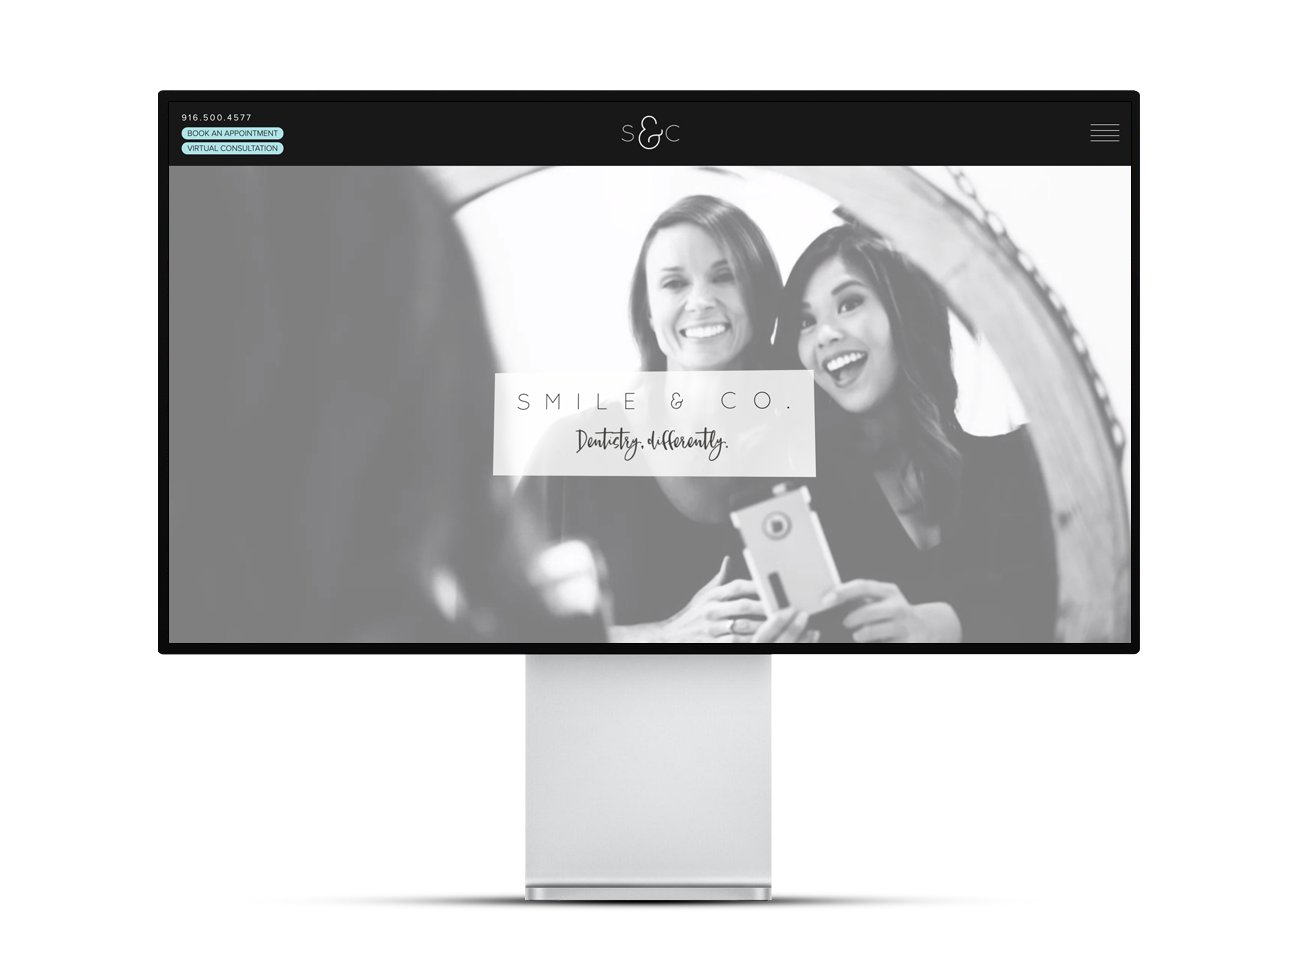 Screenshot of the Smile & Company site